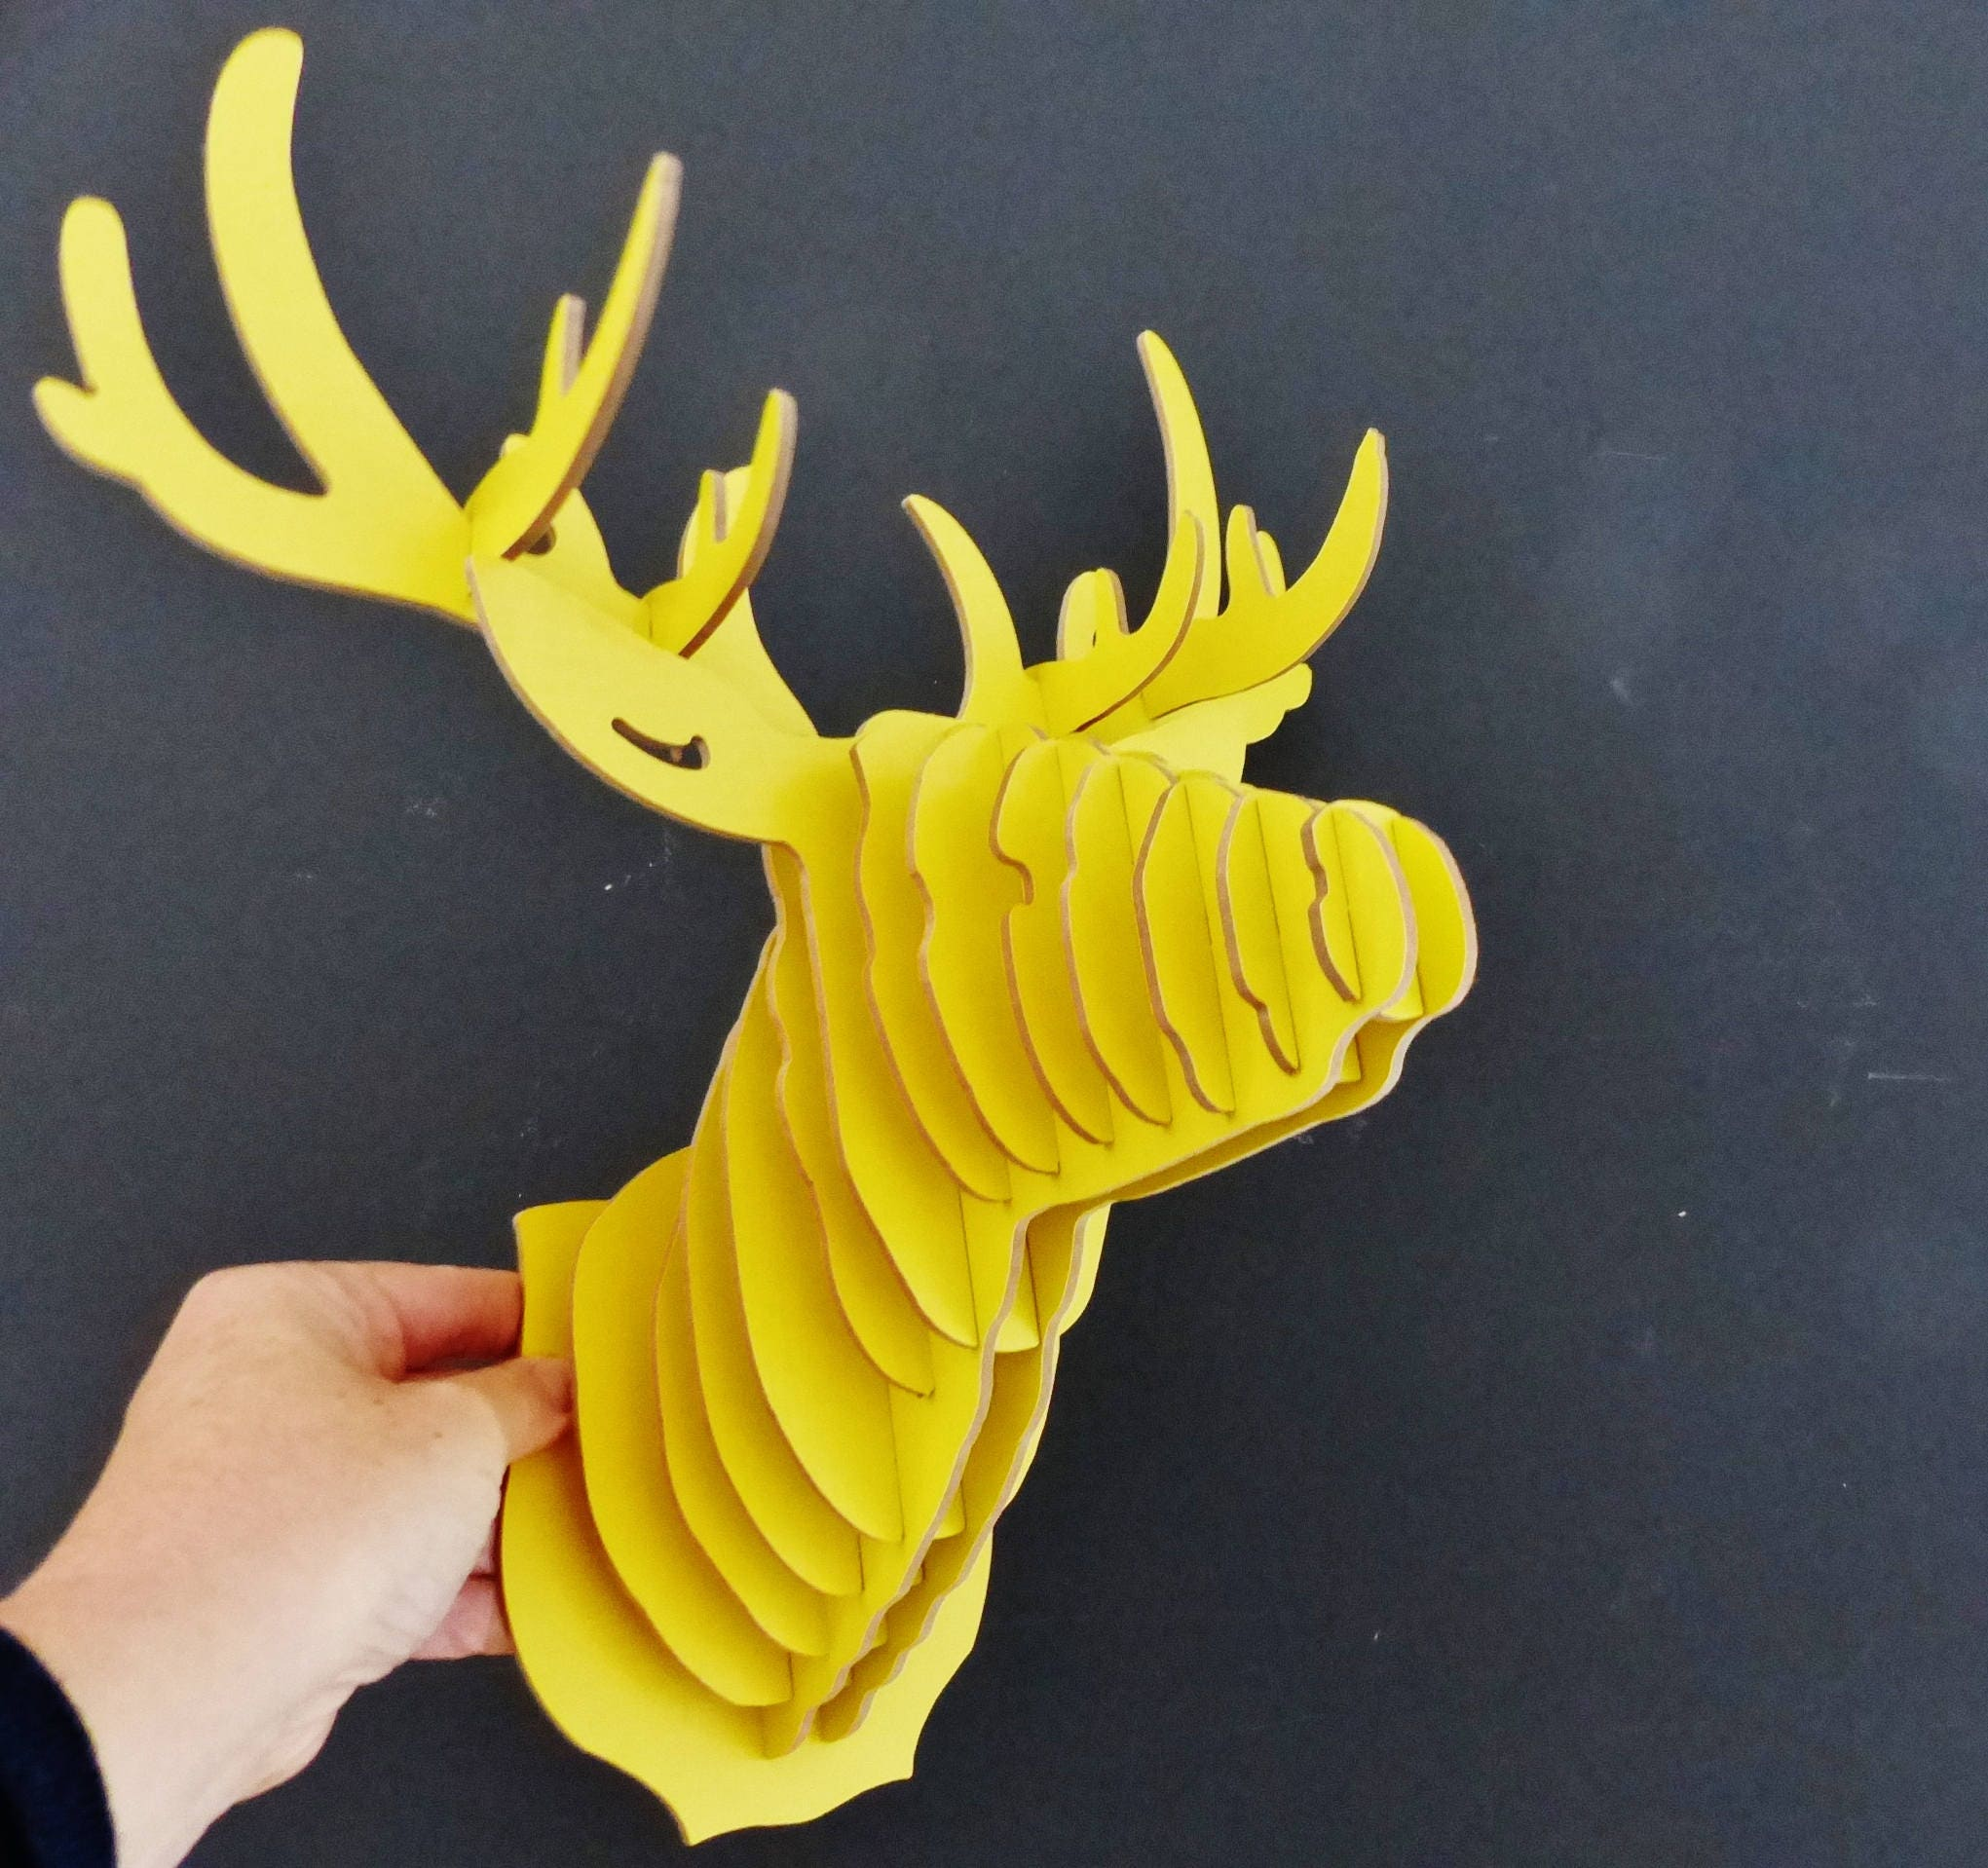 Deer trophy Kit to assemble your own yellow deer head